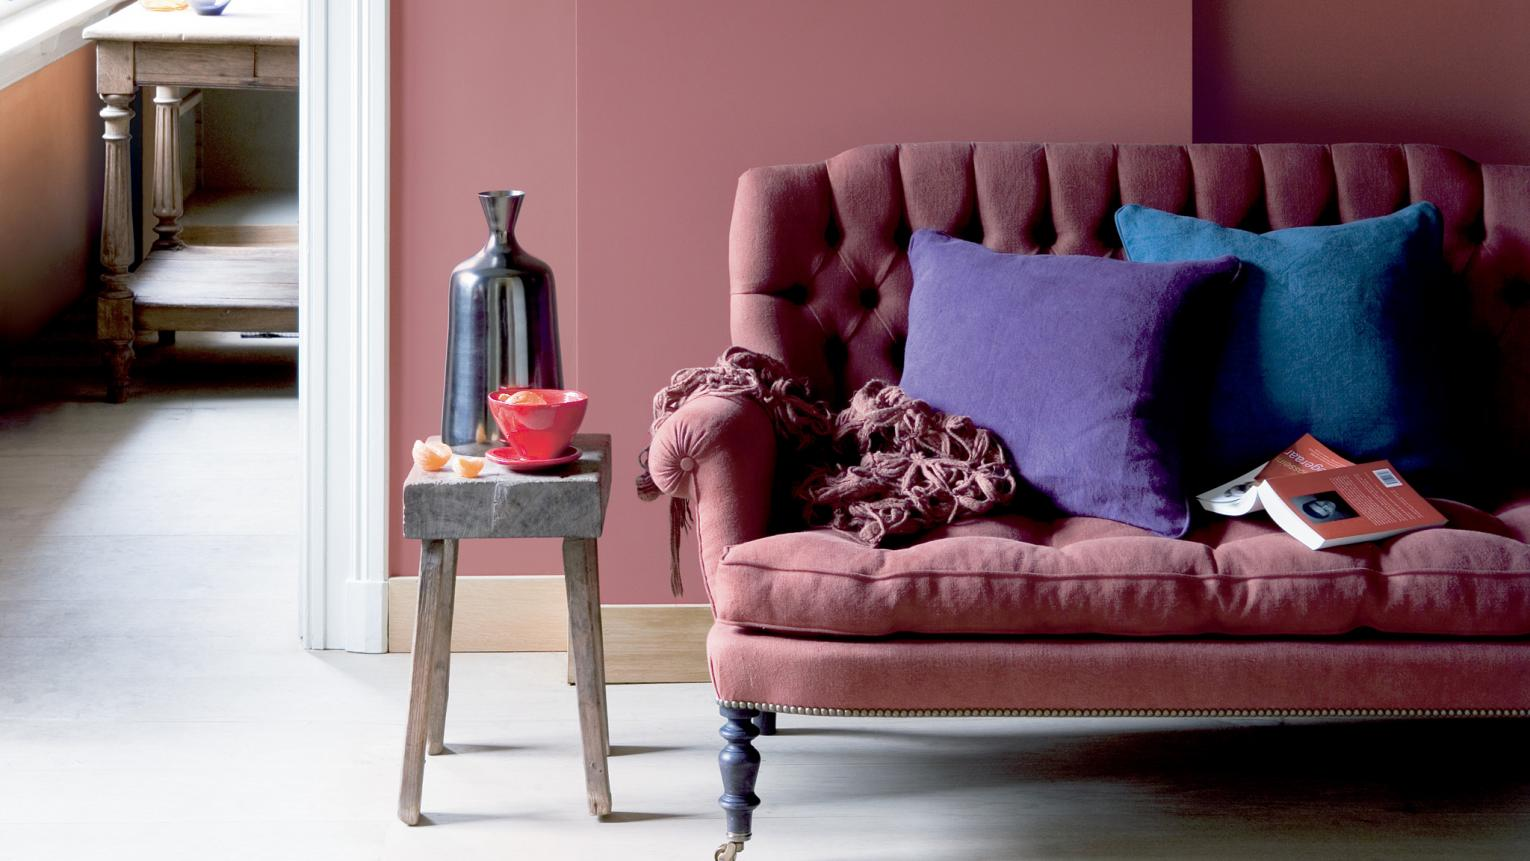 Accessorise a dusky pink living room with rich, jewel shades.